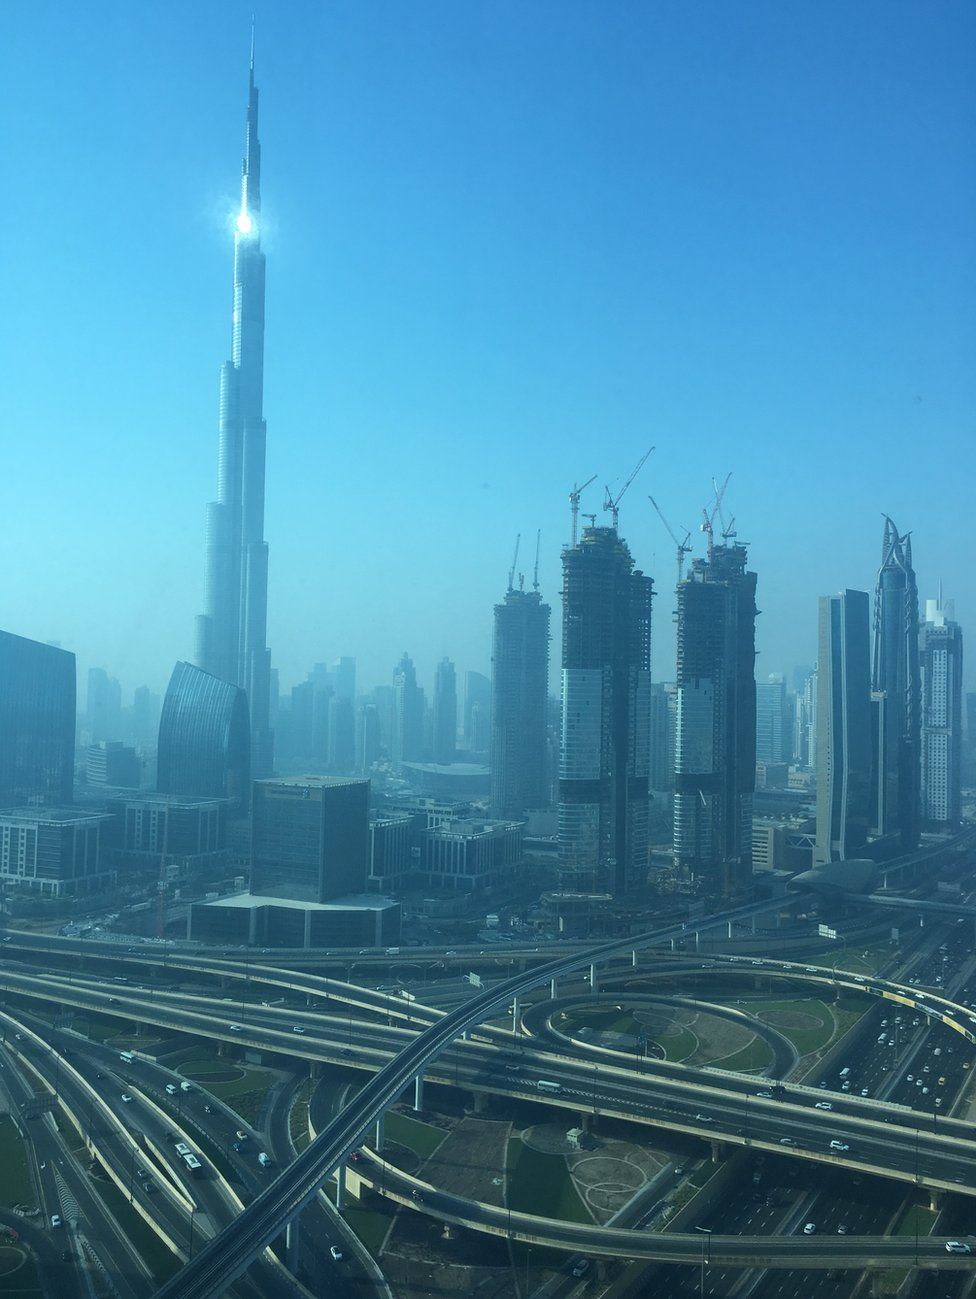 A blue light over the towers and empty roads of Dubai